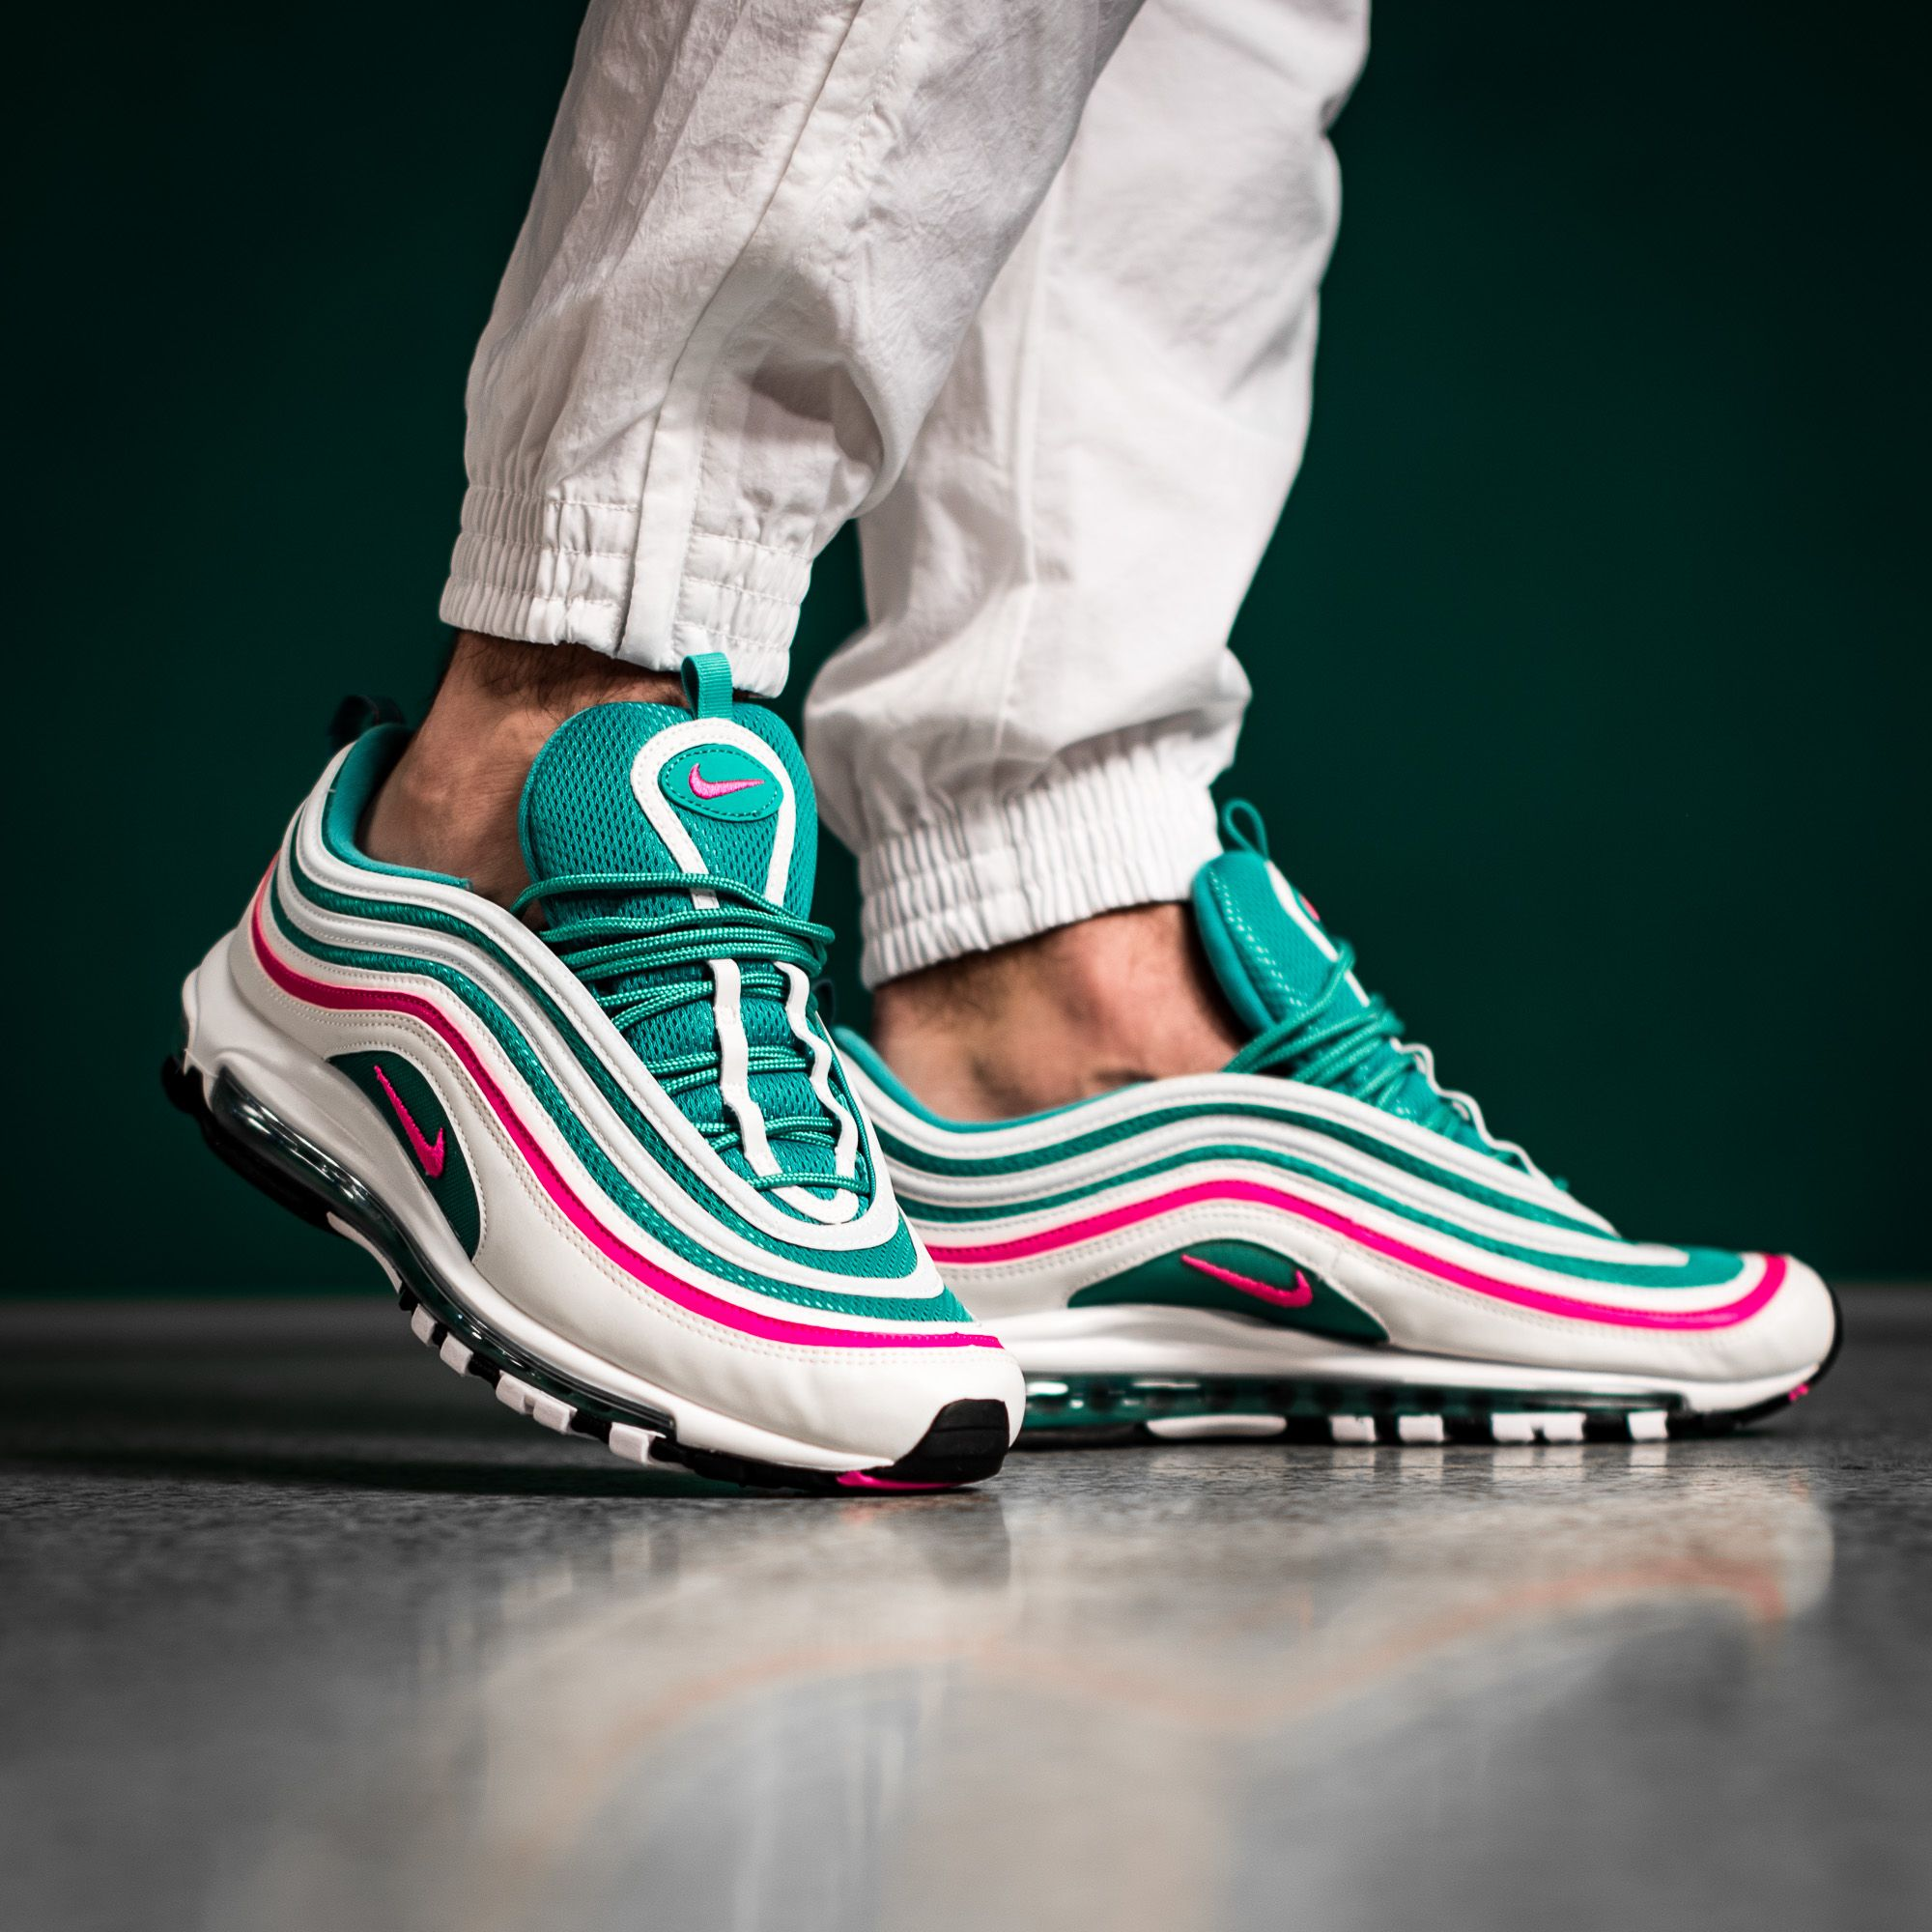 4497208afe6c Take your Talents to South Beach in this Nike Air Max 97. This upcoming